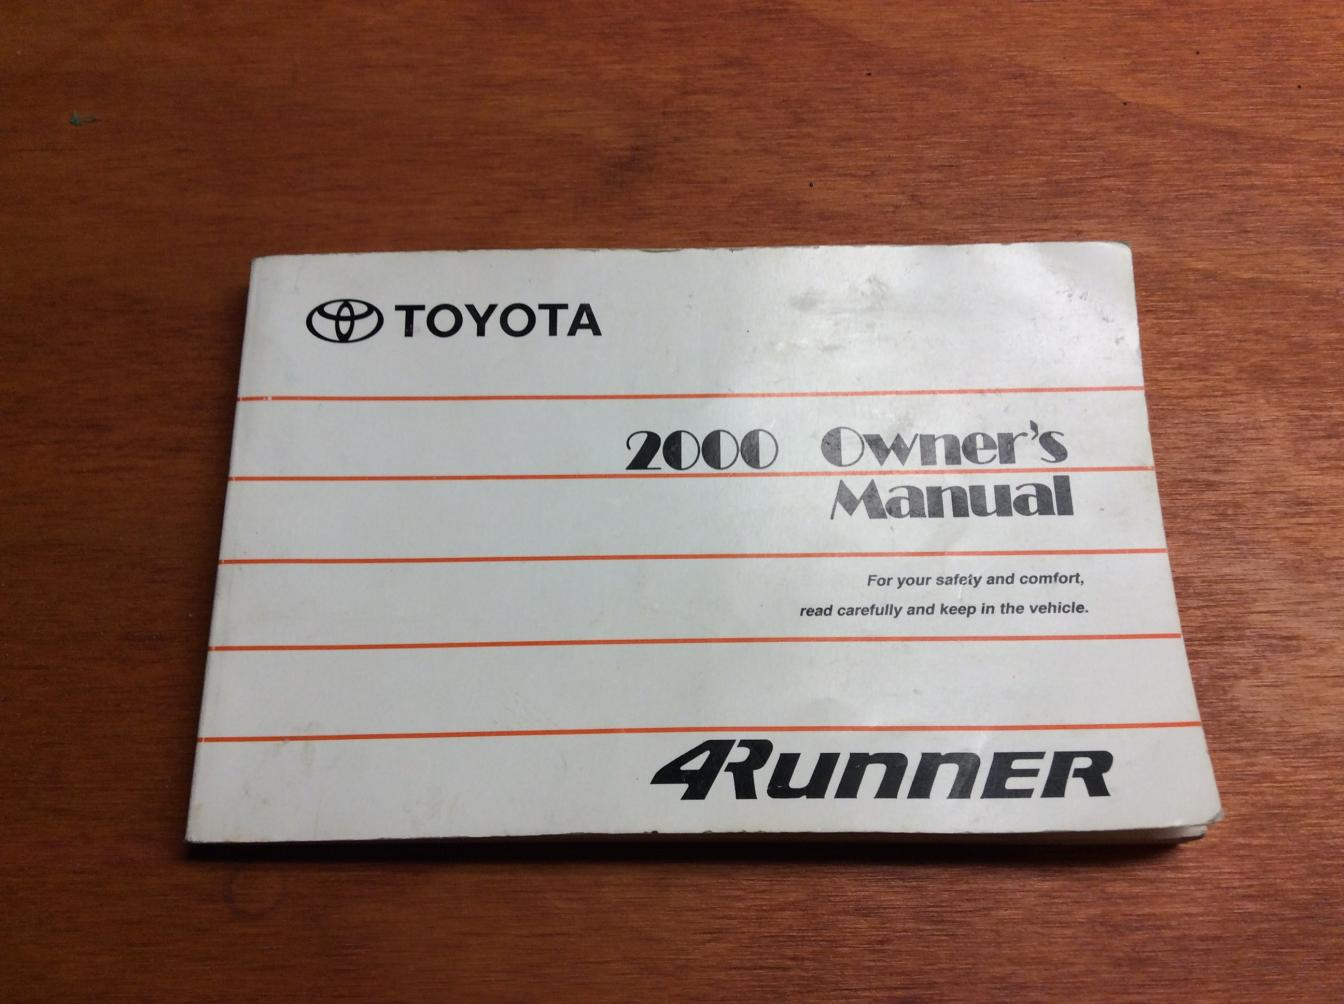 FS Miscellaneous 3rd gen items, prices vary - Lansing, MI-0ae058c0-b4ed-4b9c-b9ff-327f7a53a56c-jpg